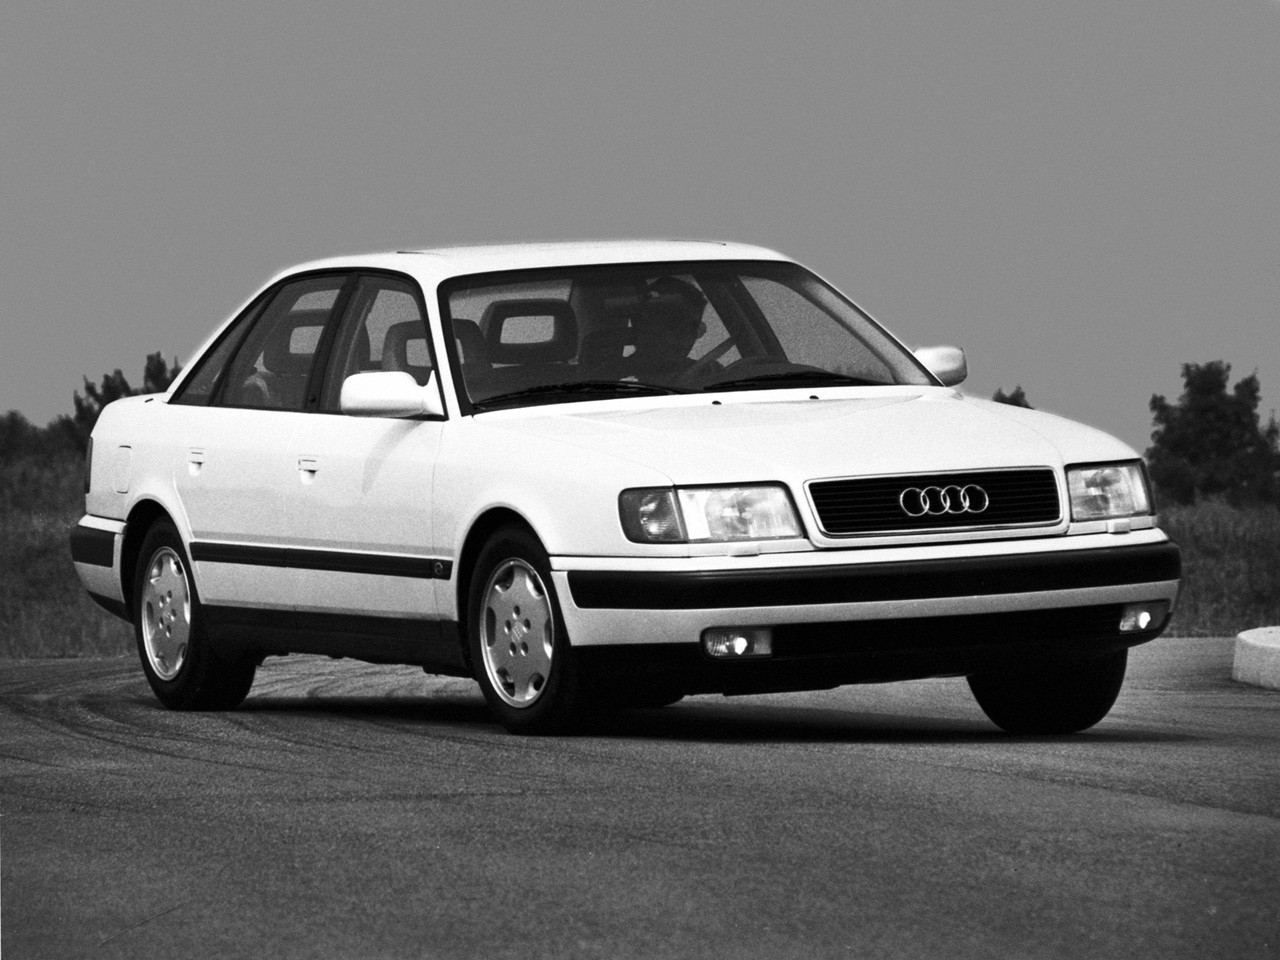 hight resolution of  audi 100 c4 1991 1994